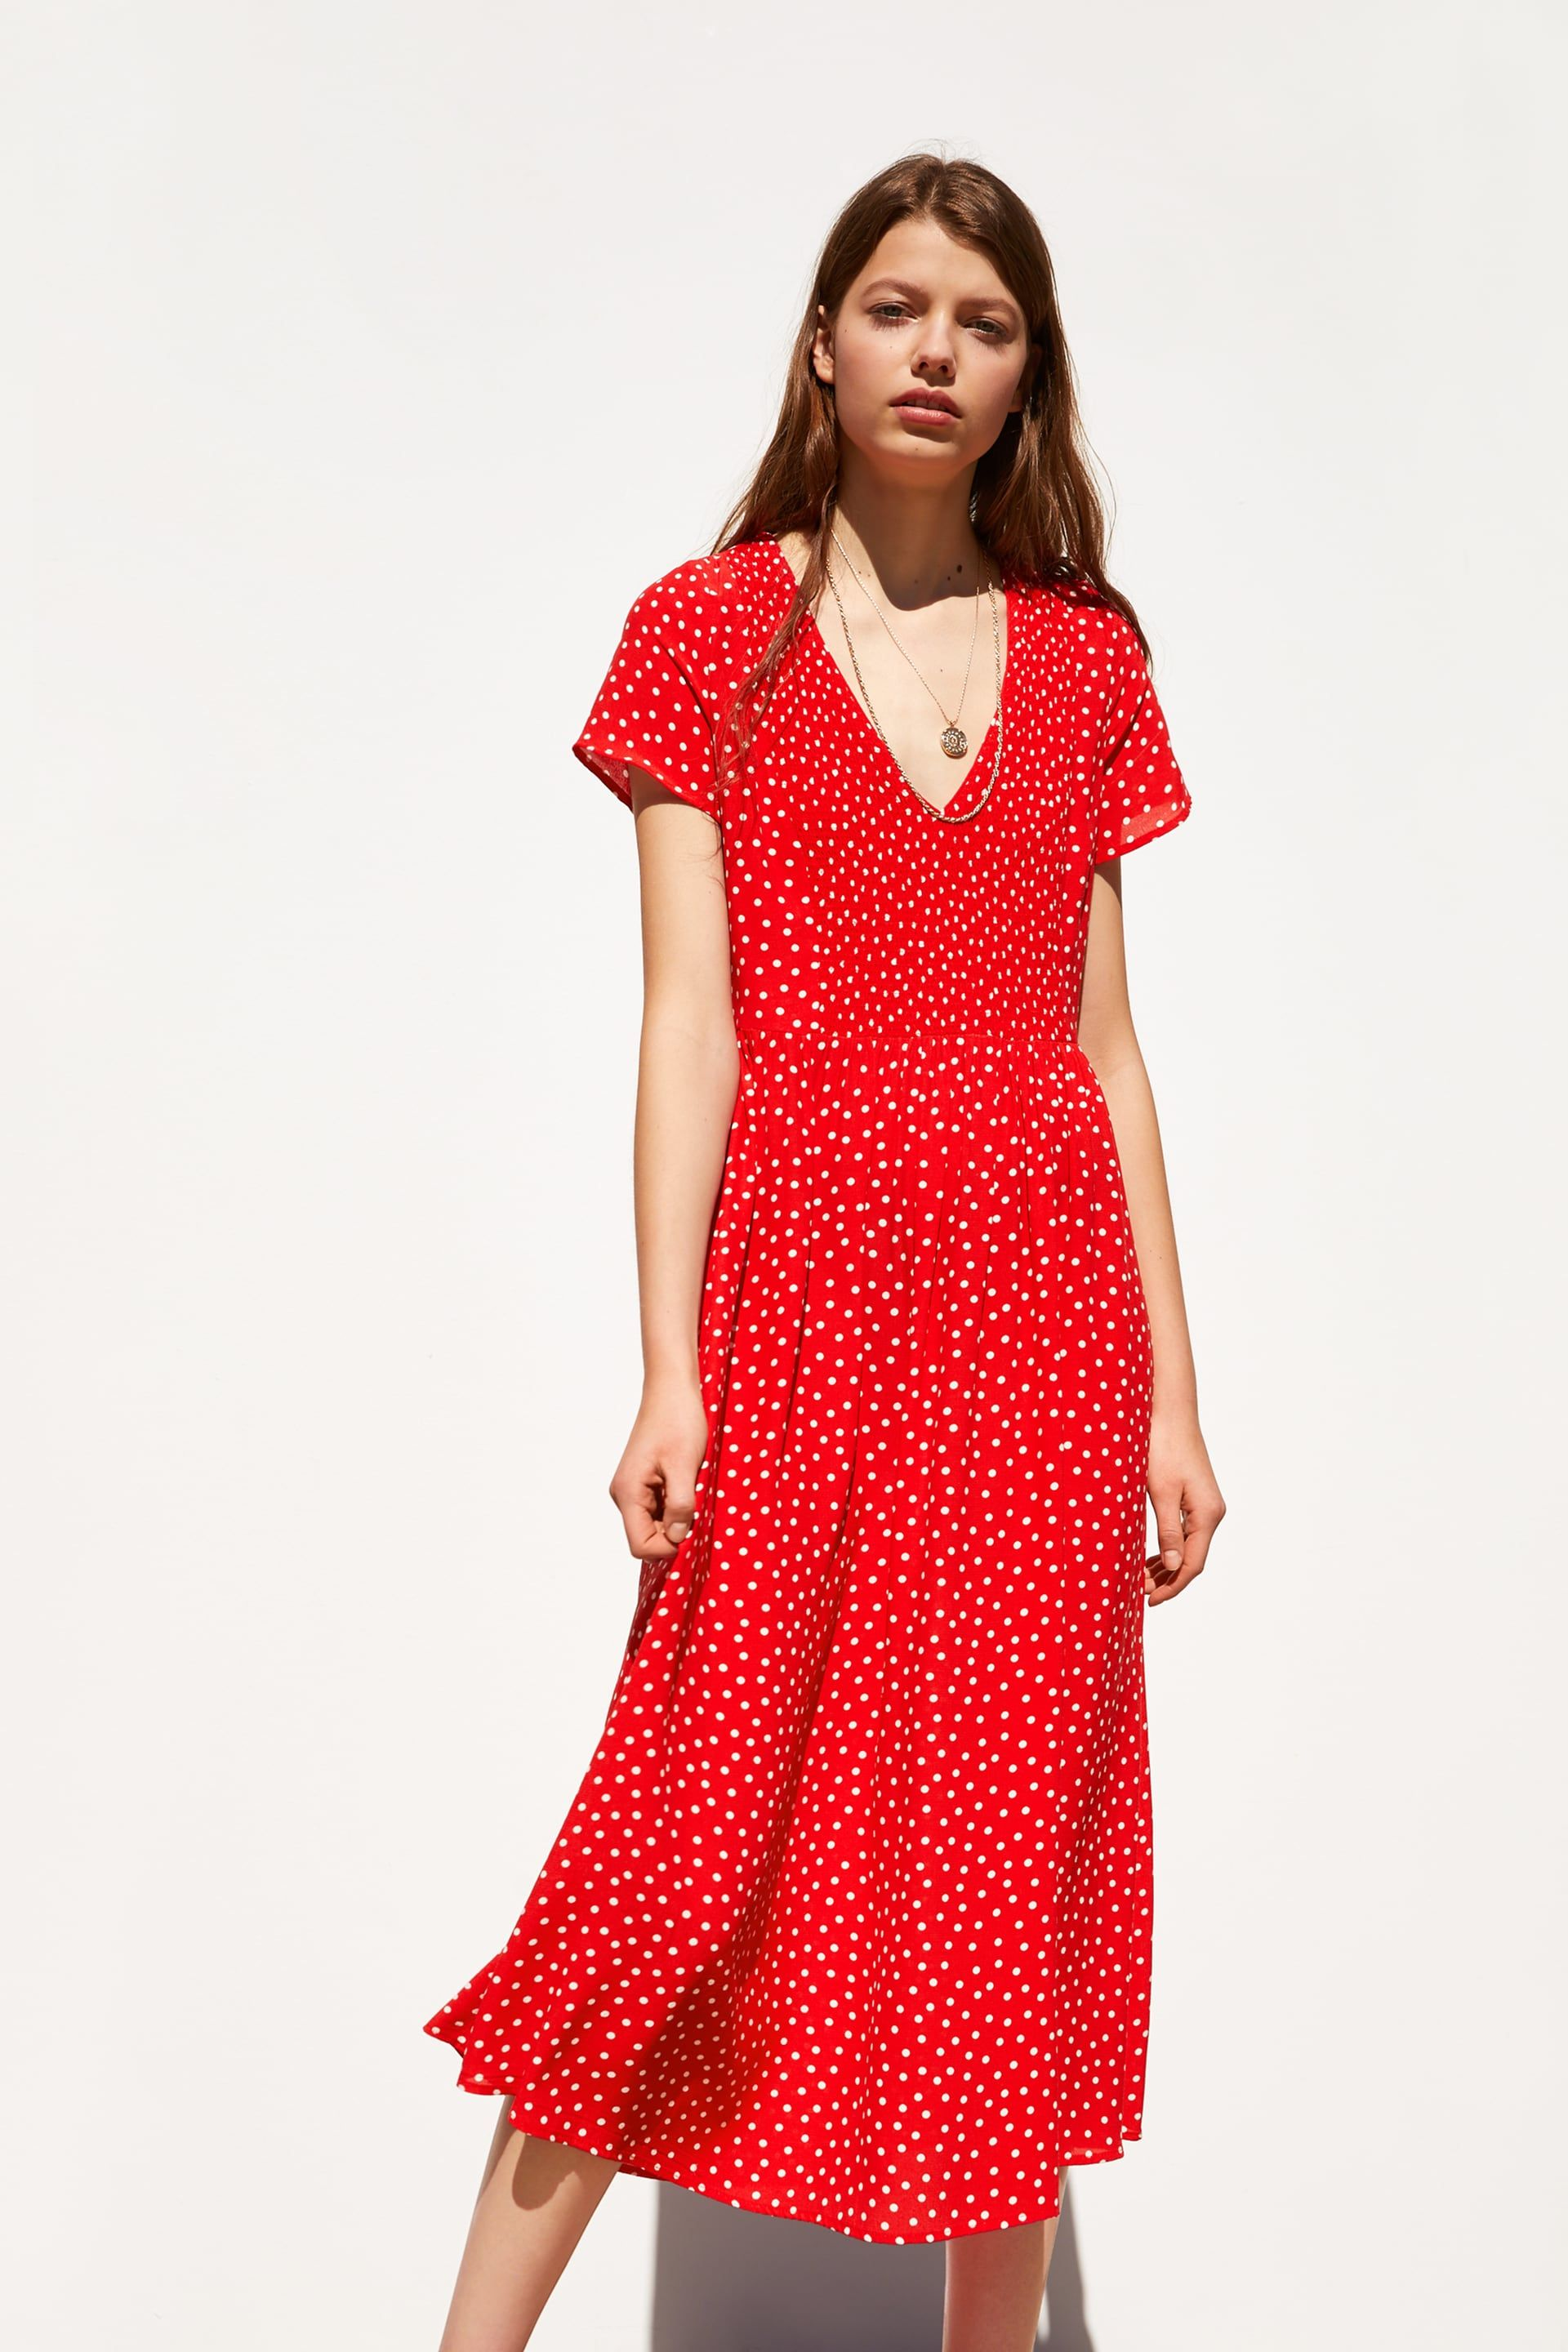 Linen red midi dress in a rustic style for a girl.